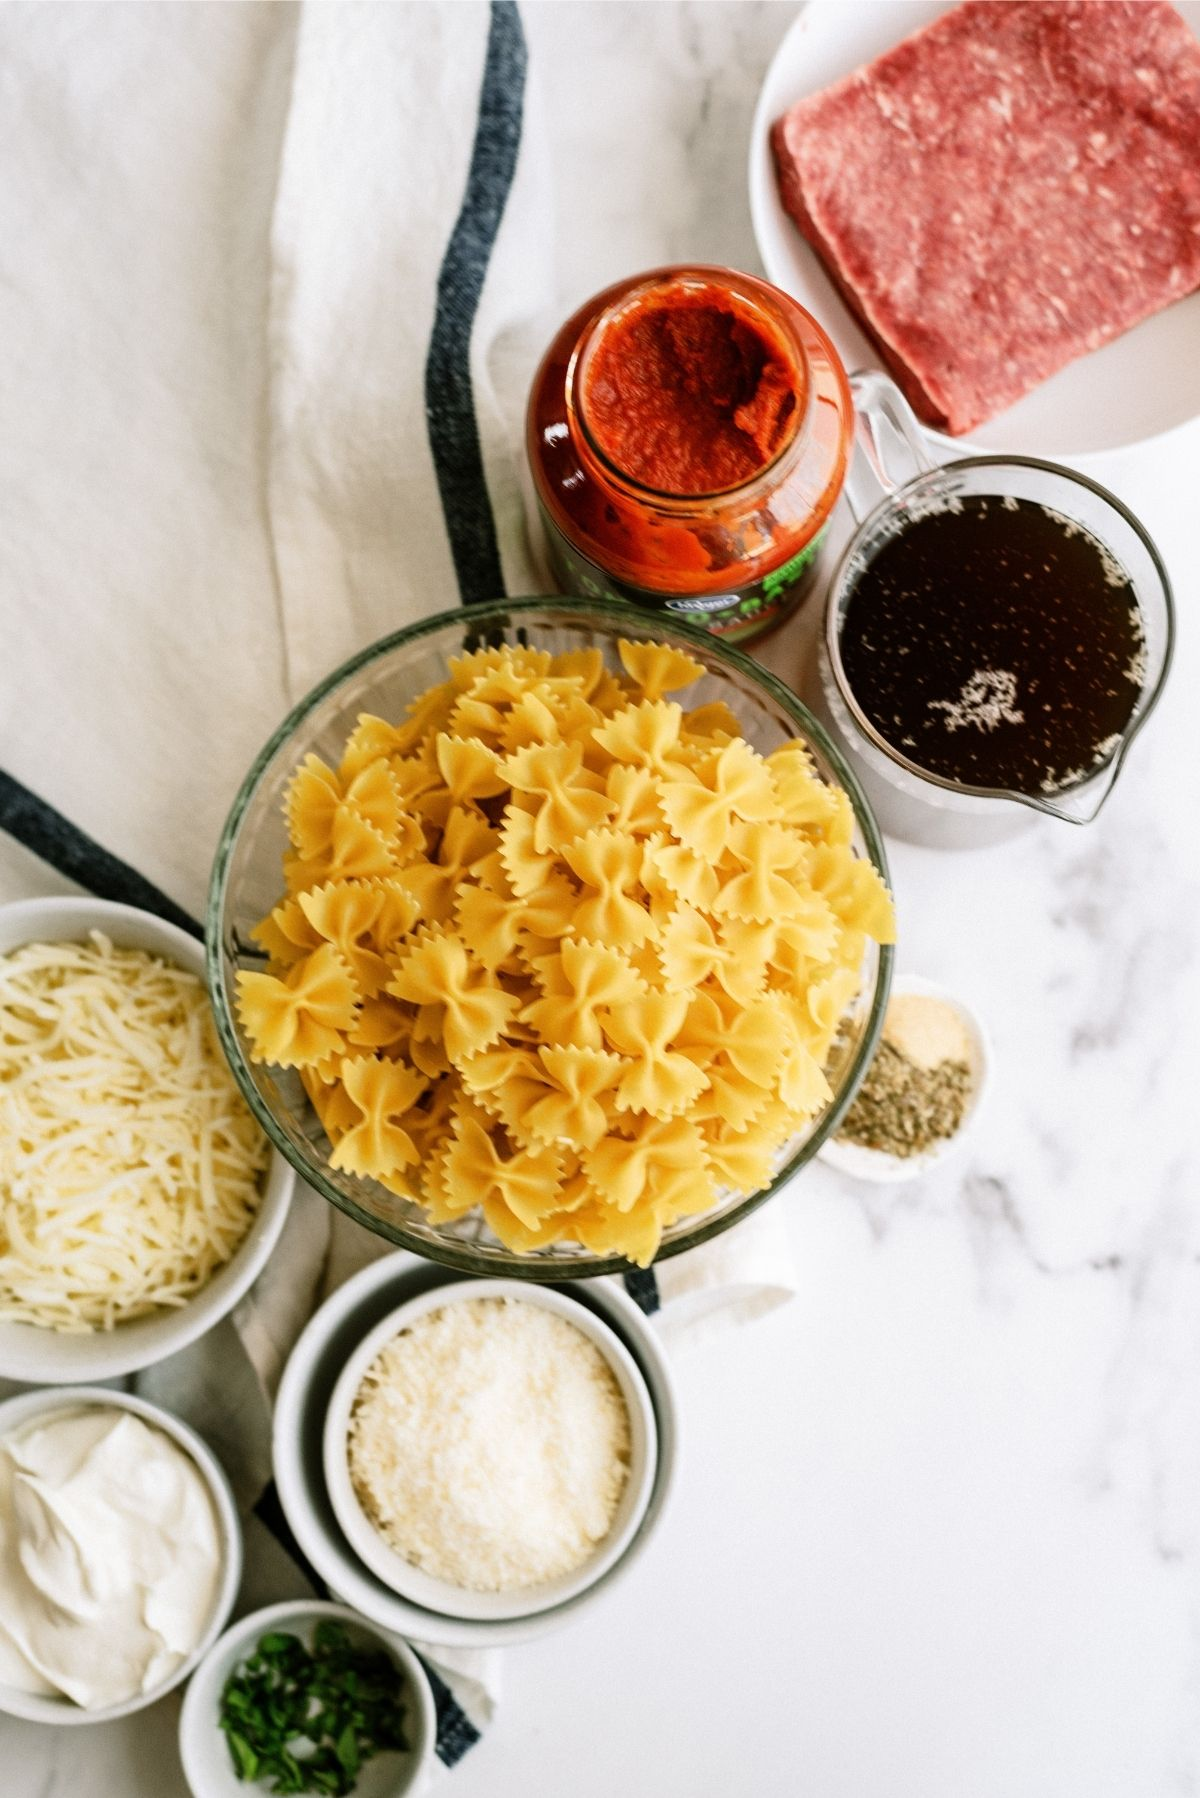 Ingredients for Instant Pot Ground Beef Lazy Lasagna